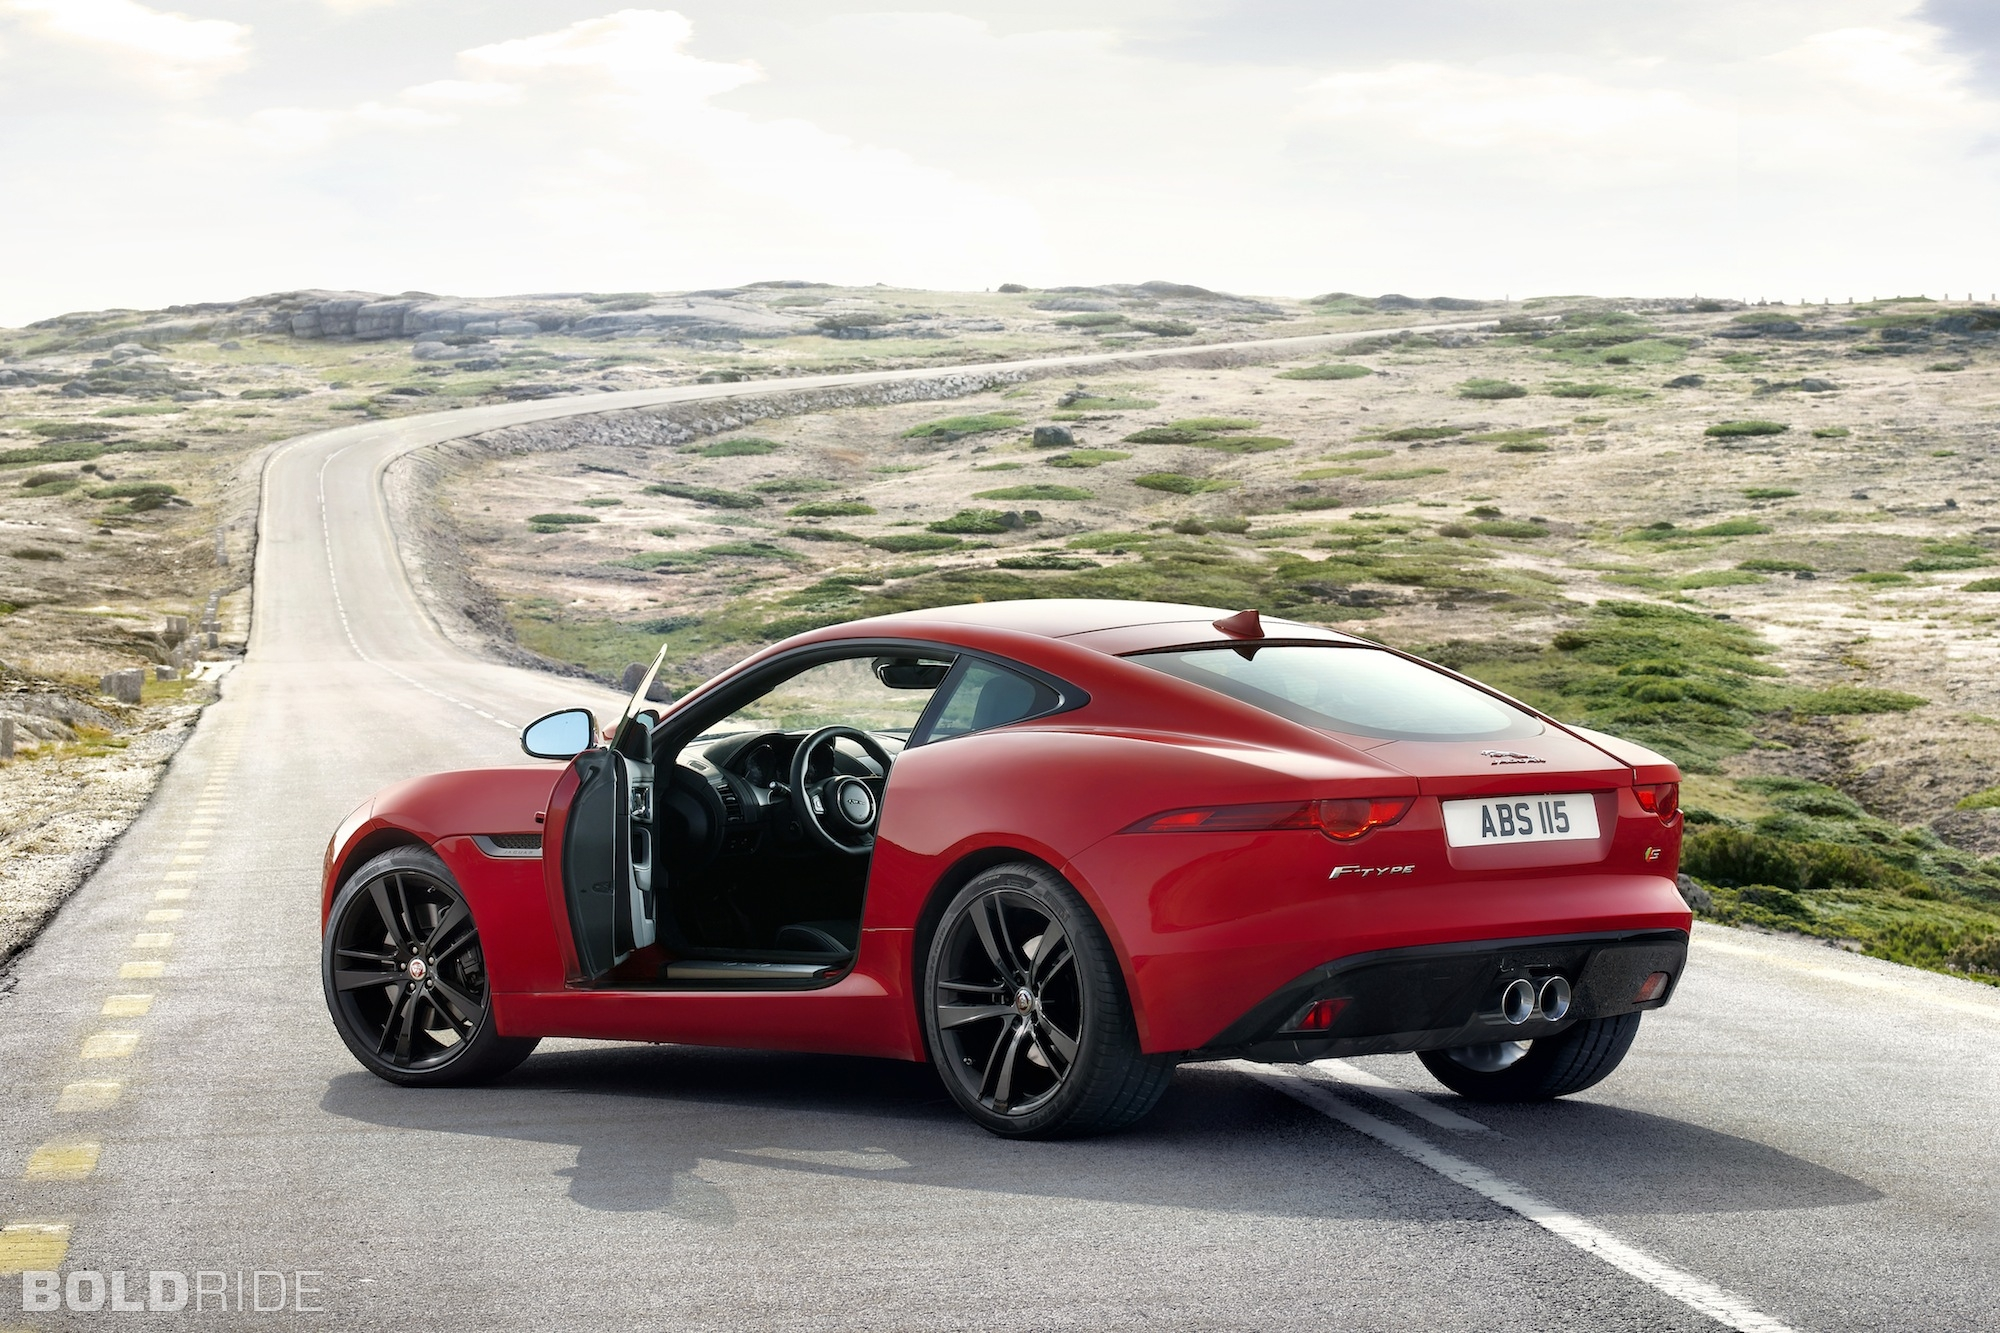 2015 Jaguar F-Type Coupe 1280 x 1080